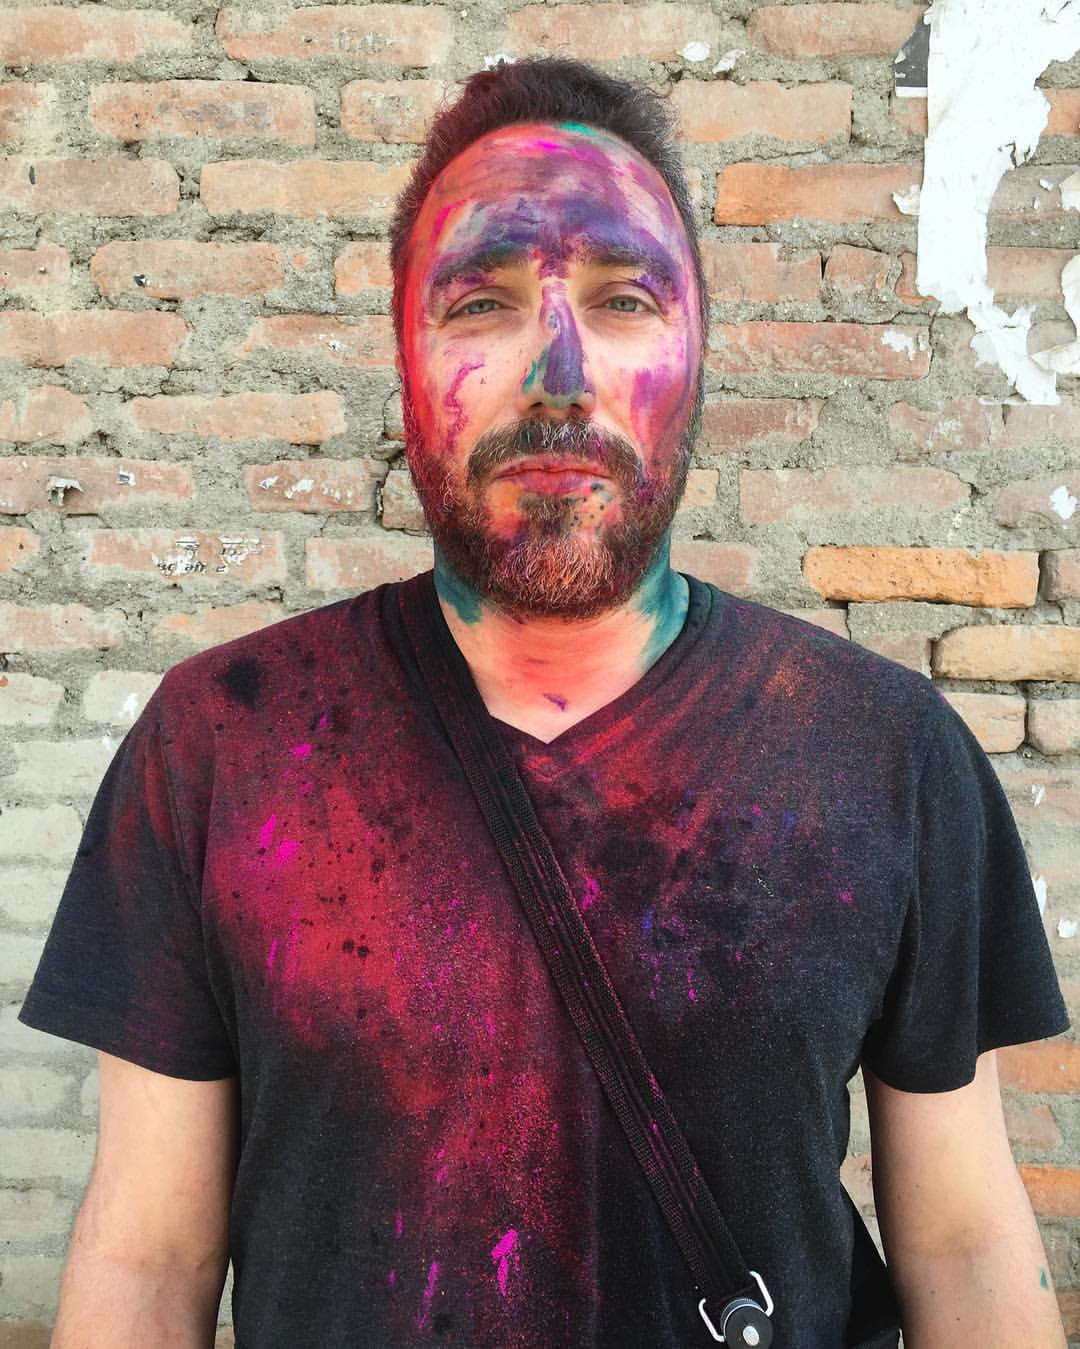 I was the favorite target of every kid within a mile on Holi the festival of colors. This was from the first 30 minutes of walking the streets of Thamal, Kathmandu. So much fun!